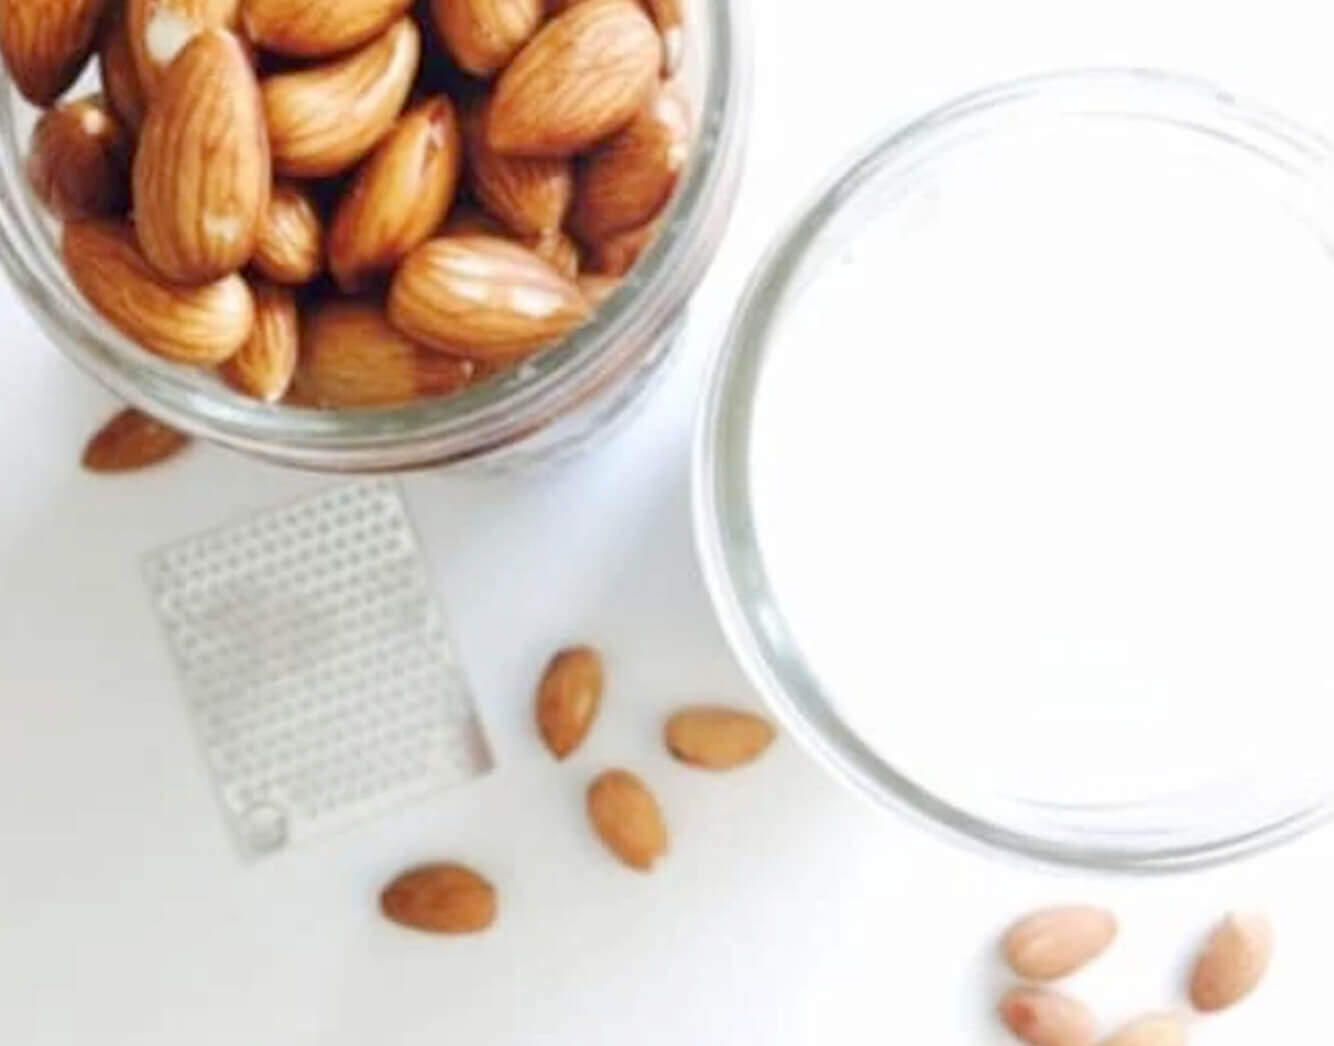 Nut milk with almonds